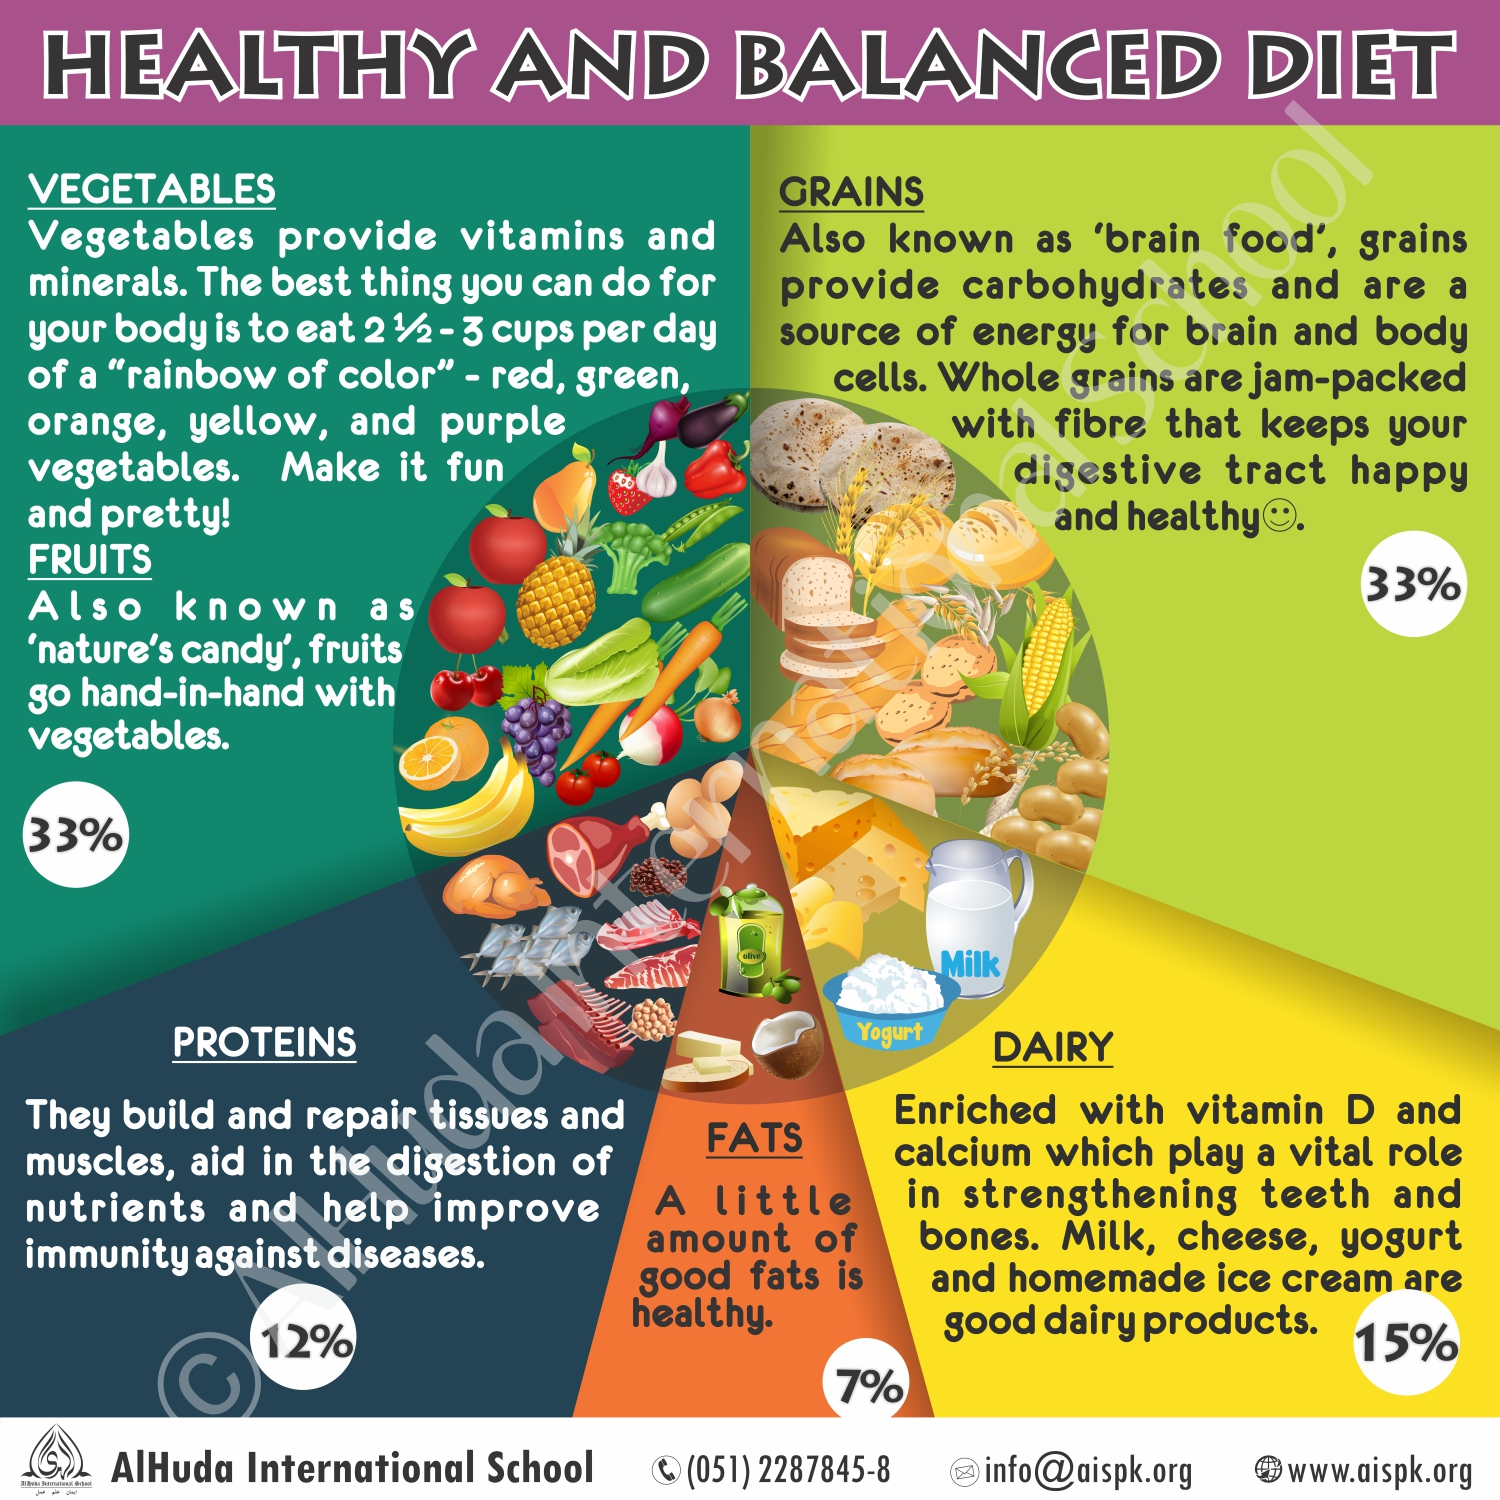 my diet plans and quest to a healthy lifestyle Rather than focusing on following a strict ketogenic diet plan, simply change your goals to consider a low carb and anti-inflammatory diet overall develop natural stress-relaxation techniques to reduce your body's stress response and create peace and relaxation in your life.